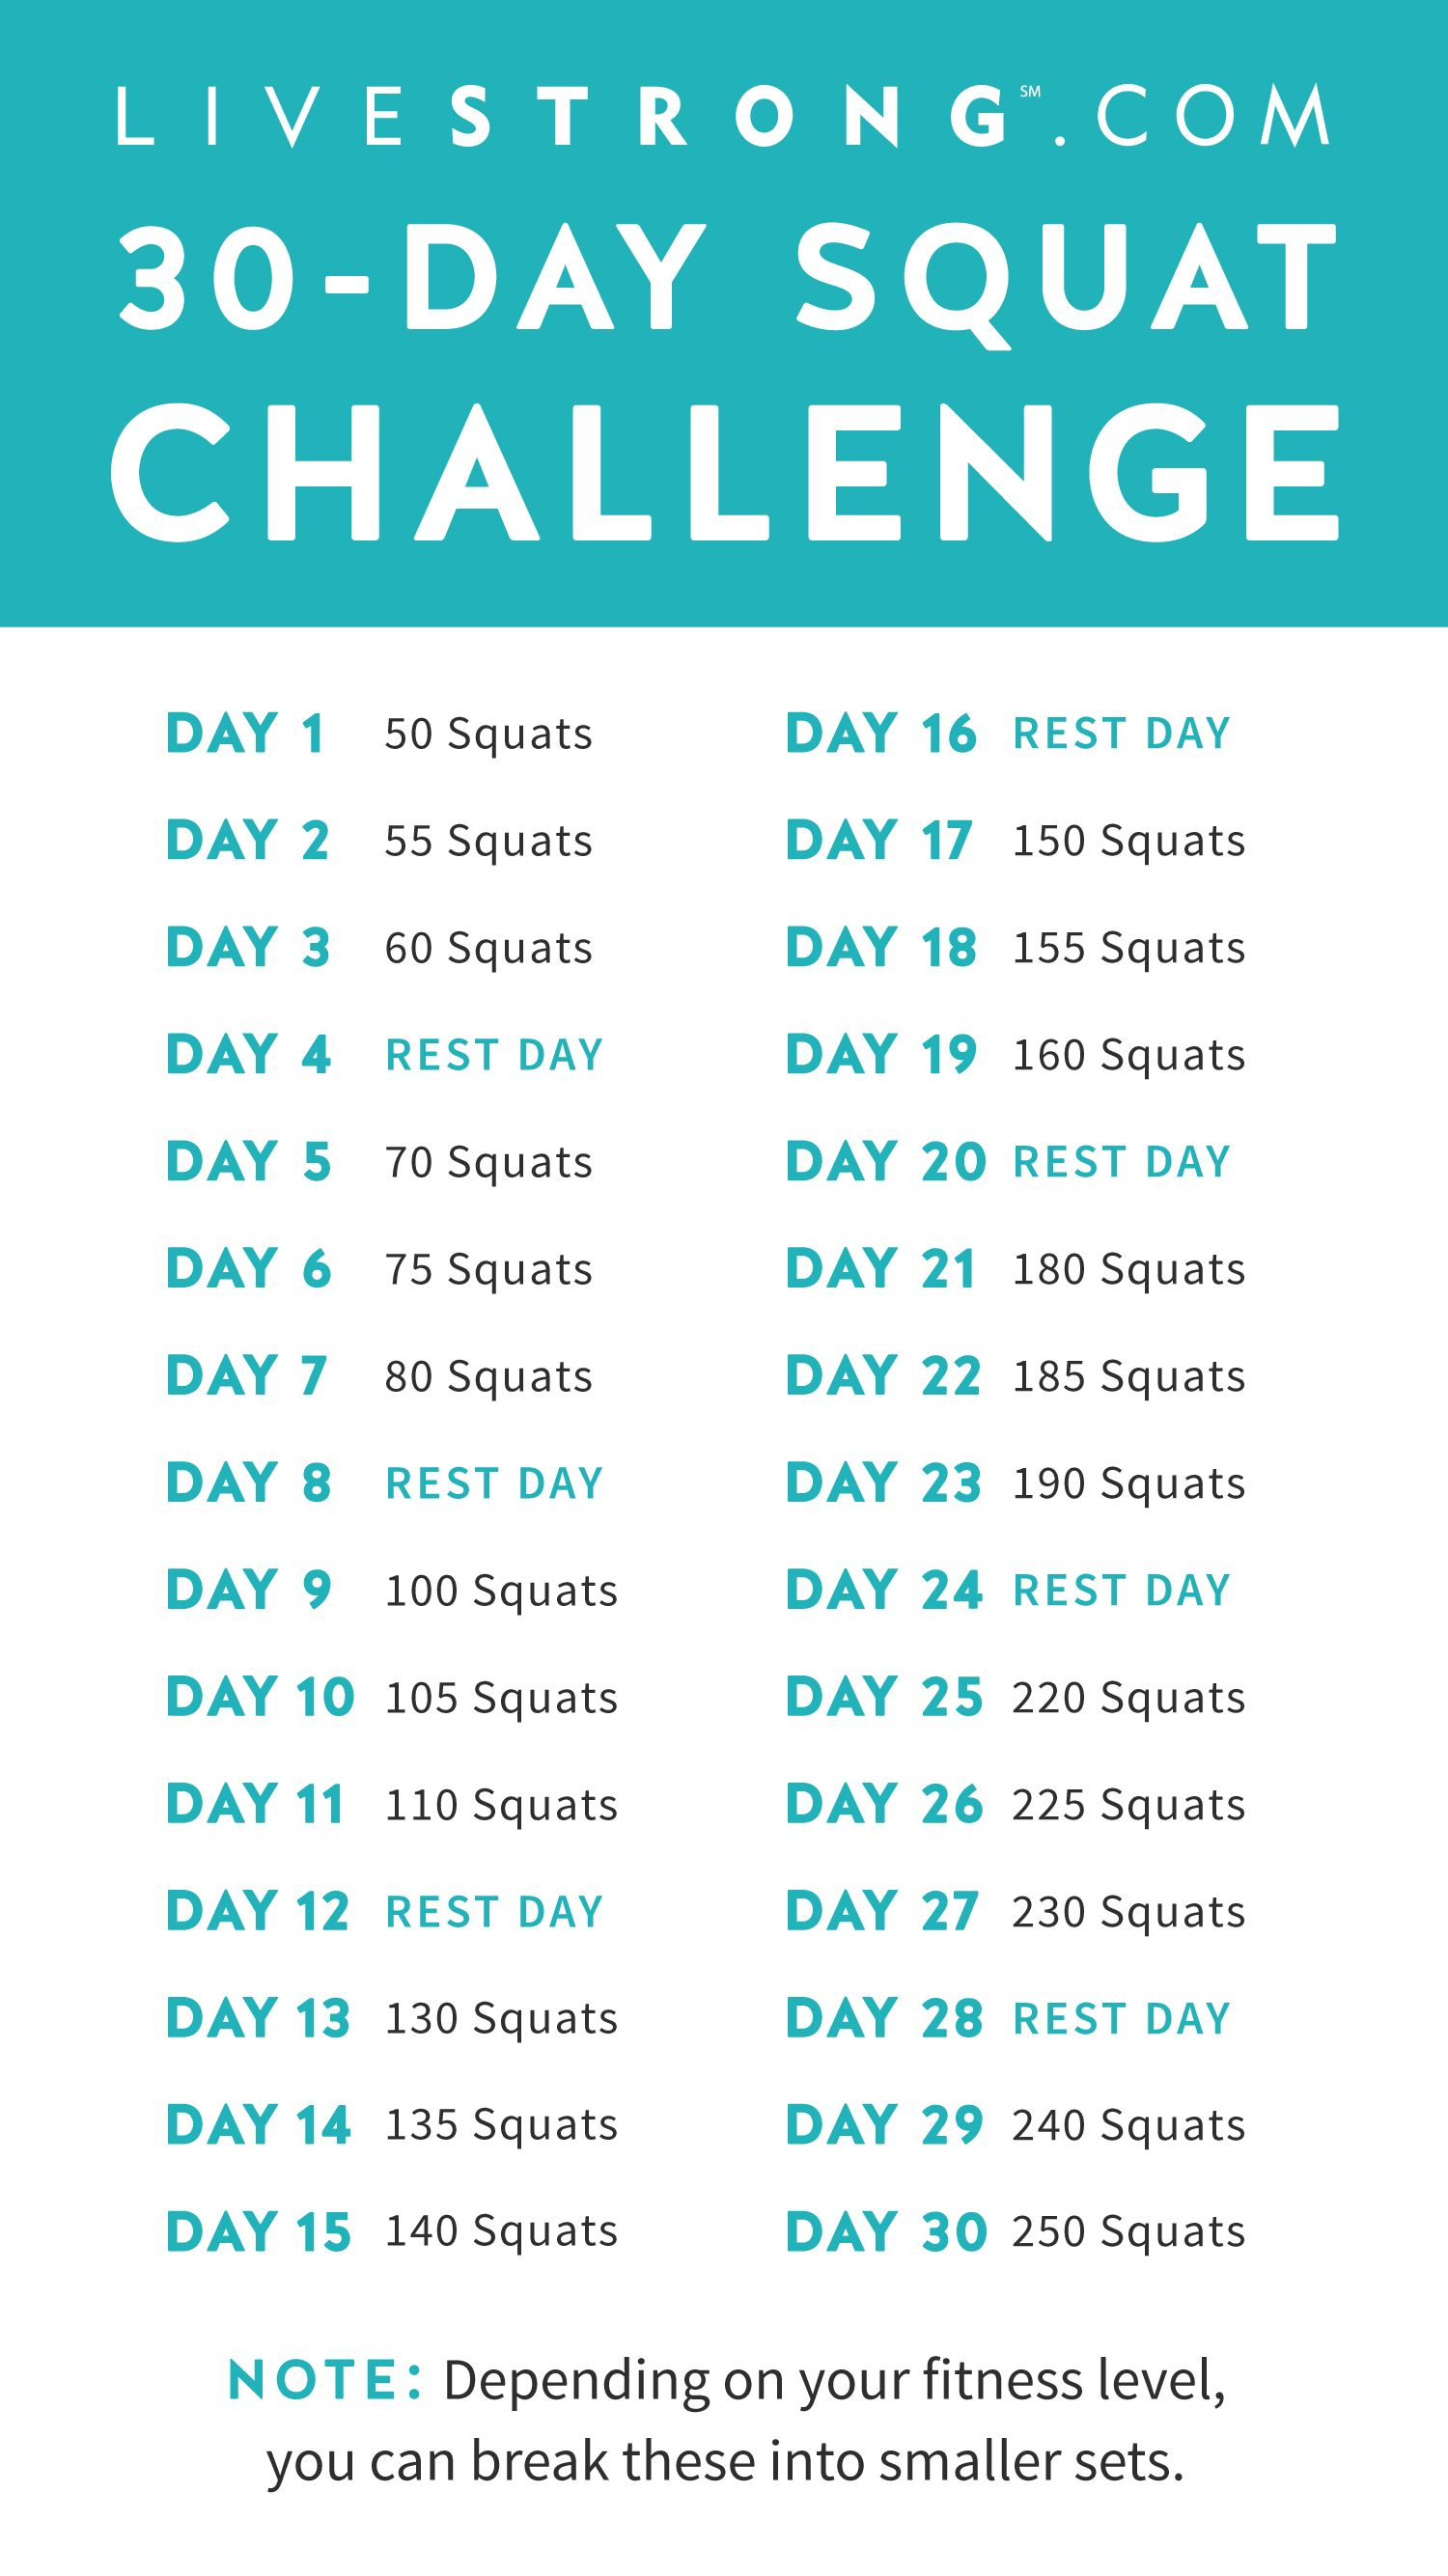 The 30 Day Squat Challenge | 30 Day Squat Challenge, 30 Day With 30 Day Squat Calender